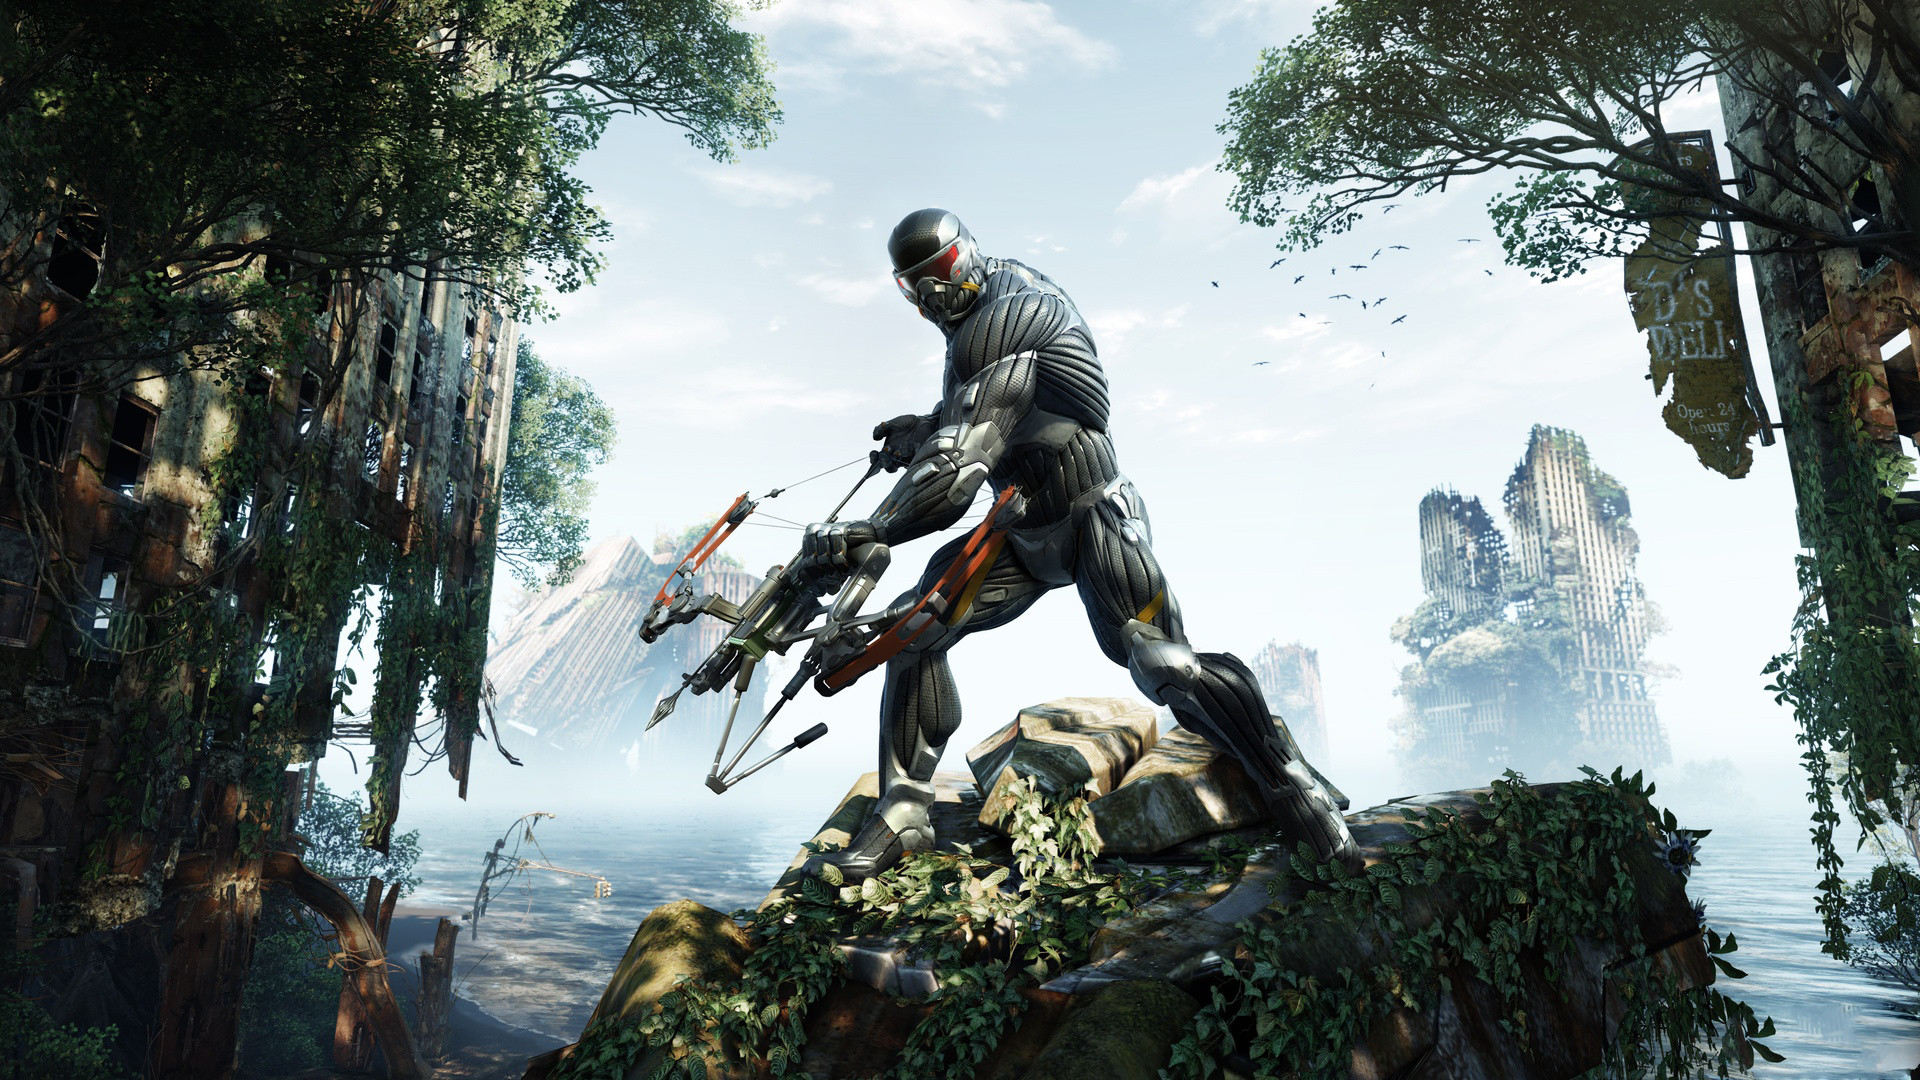 Crysis-3-modded-controllers-info1+1.jpg